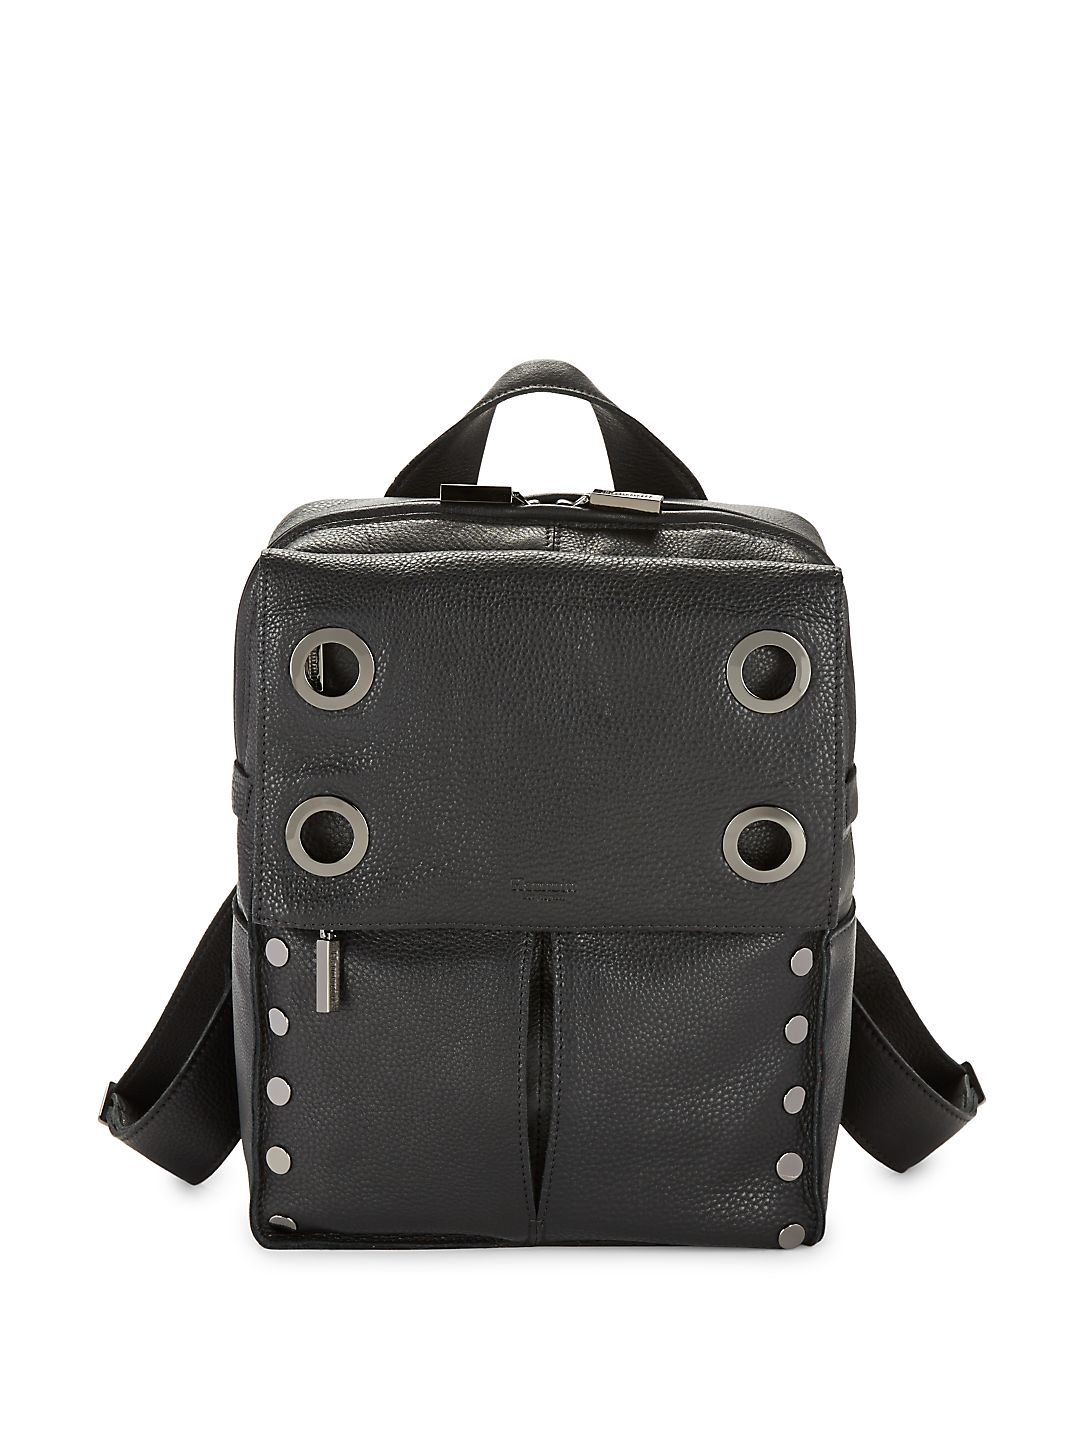 Grommet Pebbled leather Backpack